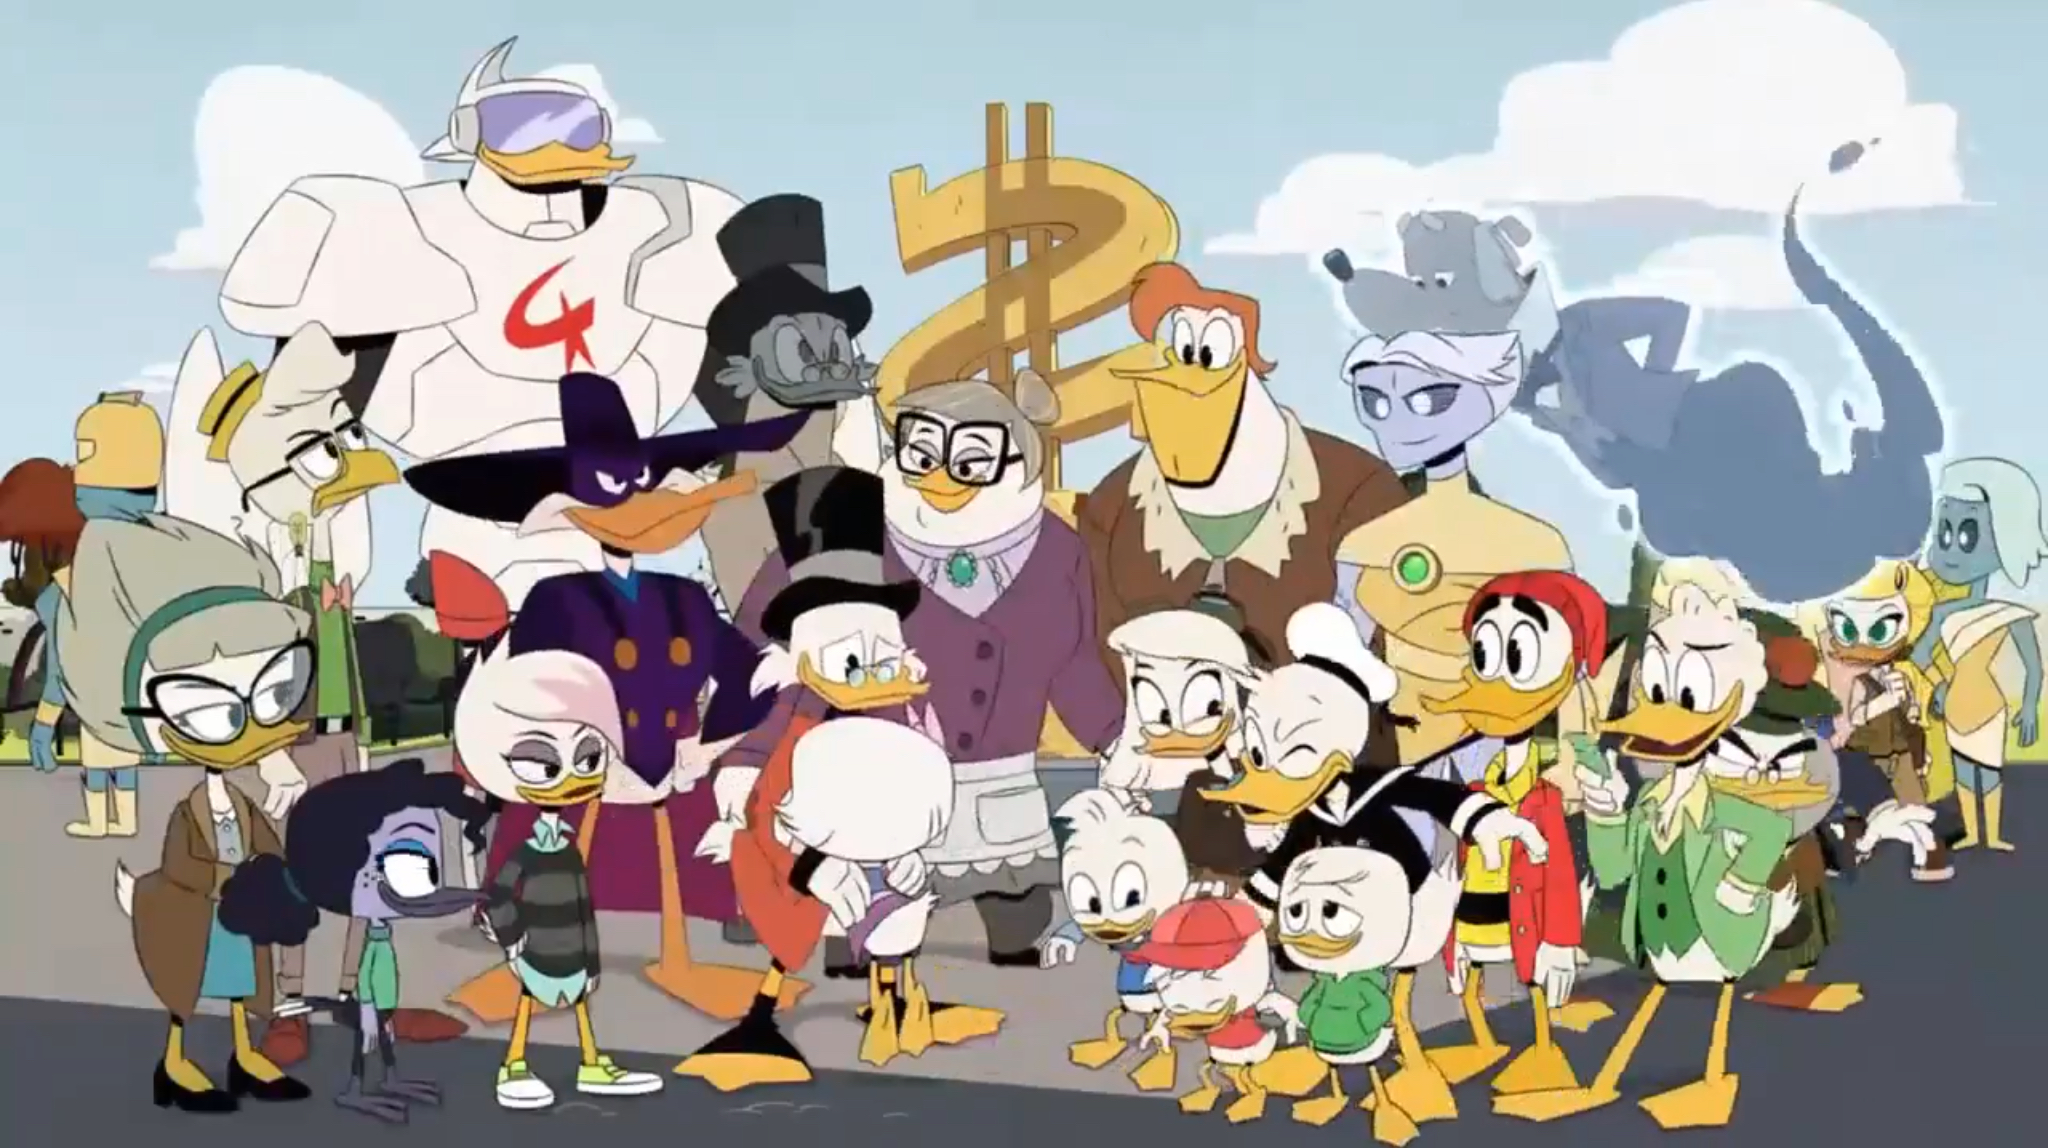 Fethry Duck (DuckTales 2017)